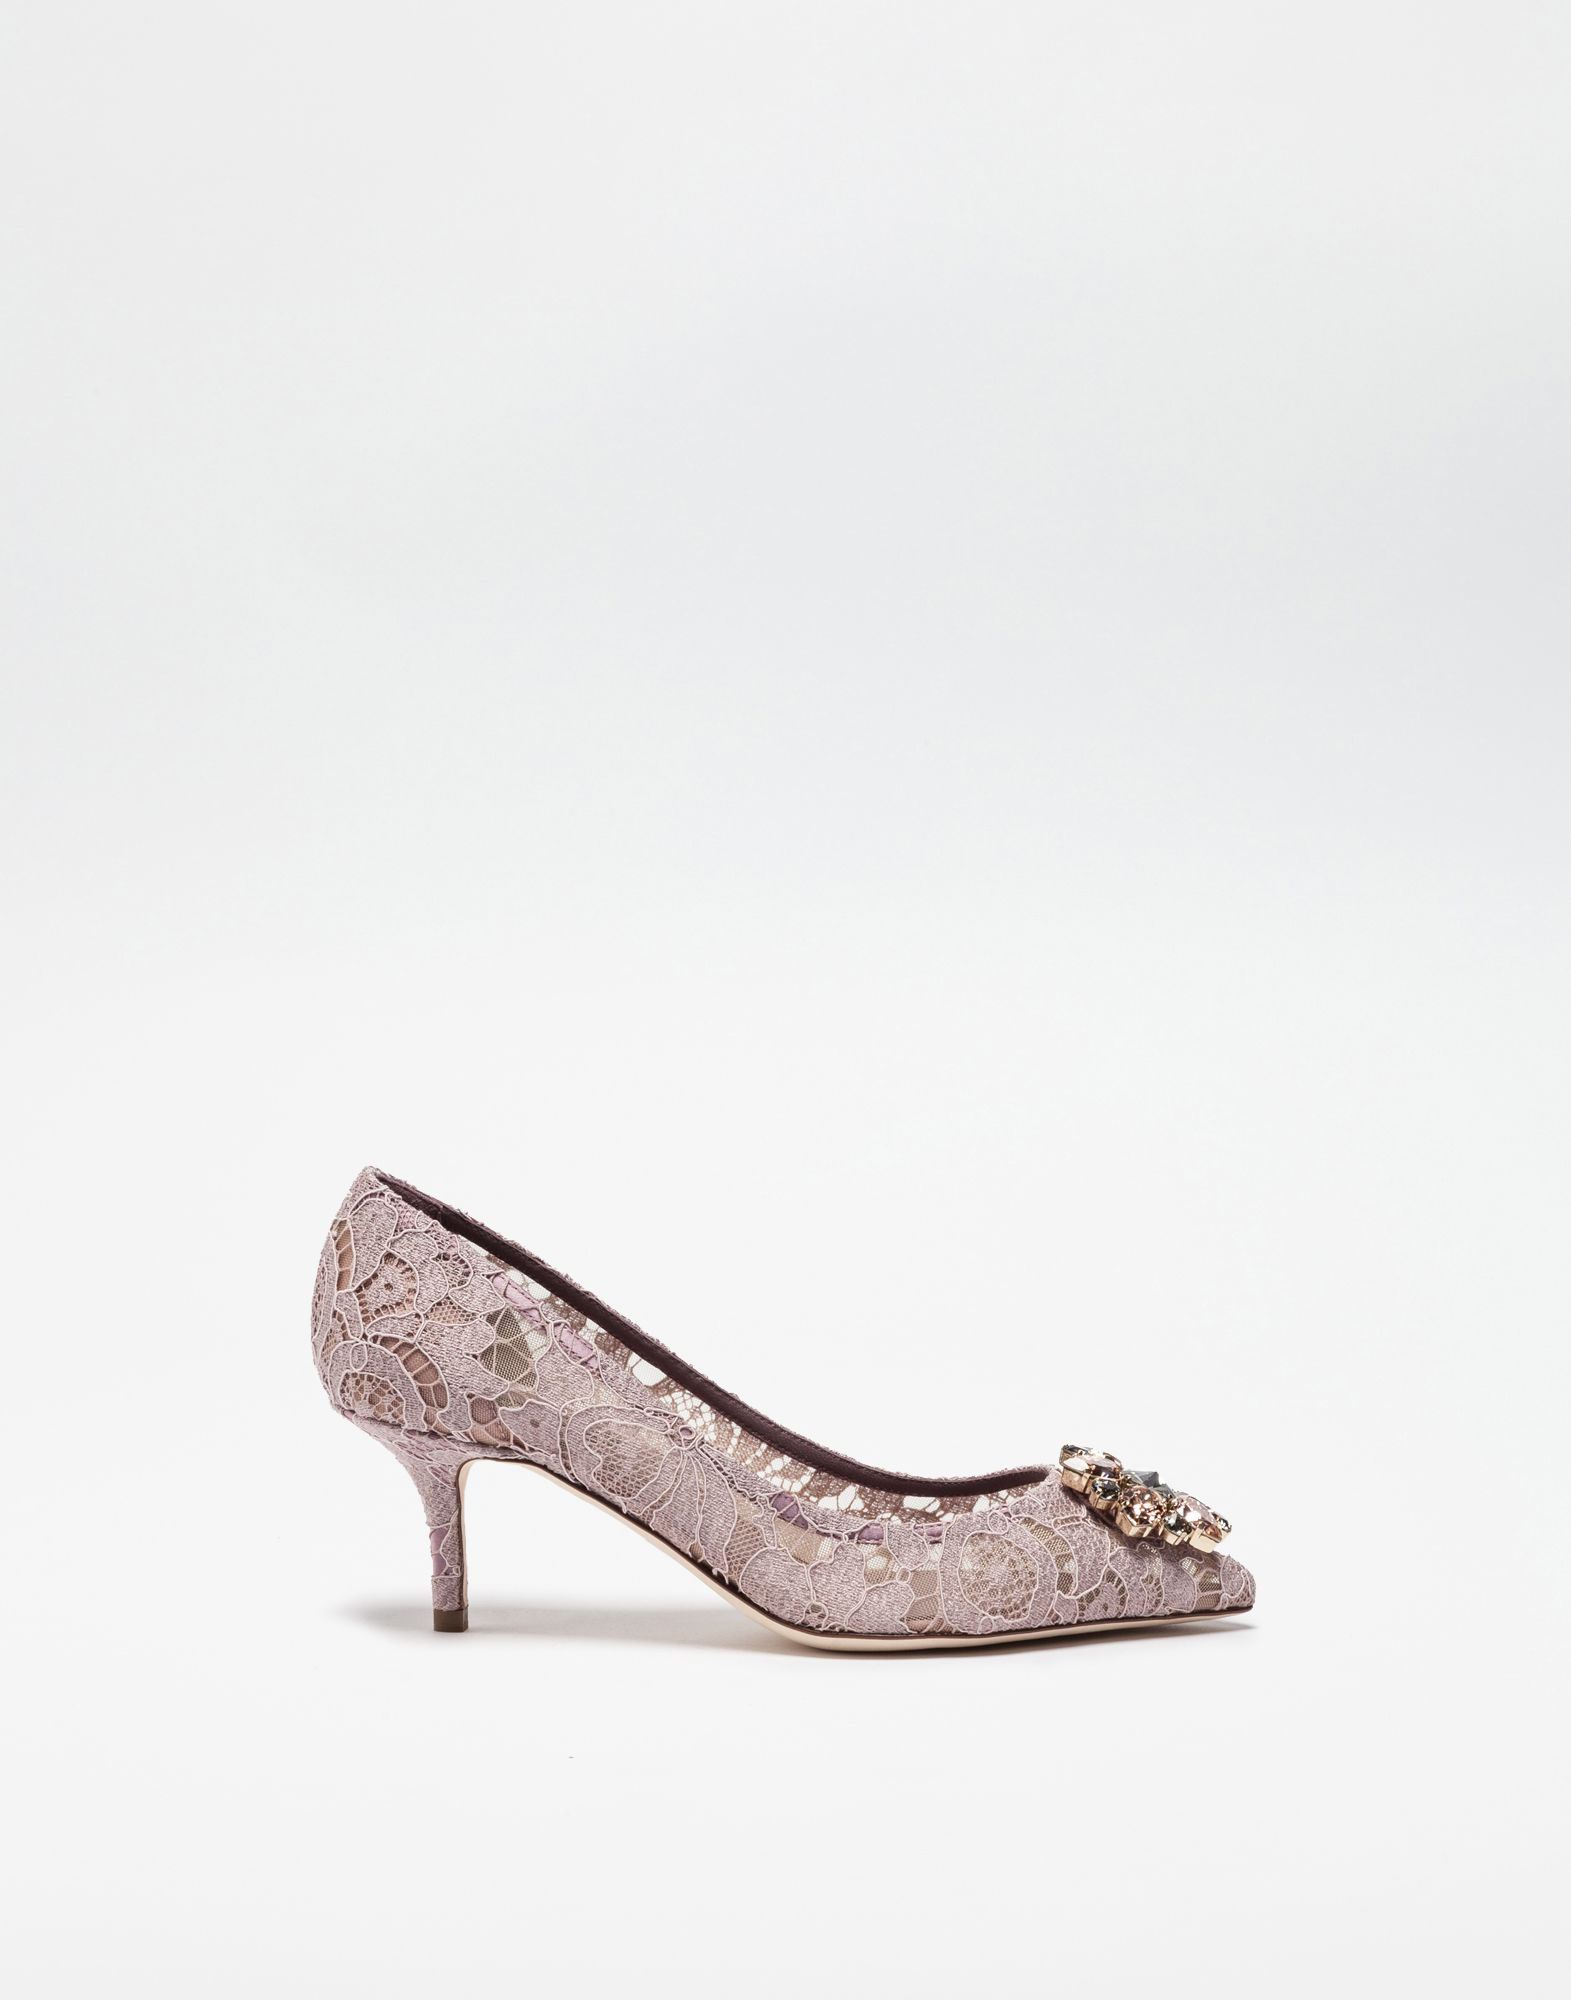 Pump In Taormina Lace With Crystals Women Dolce Gabbana Dolce And Gabbana Pumps Dolce Gabbana Online